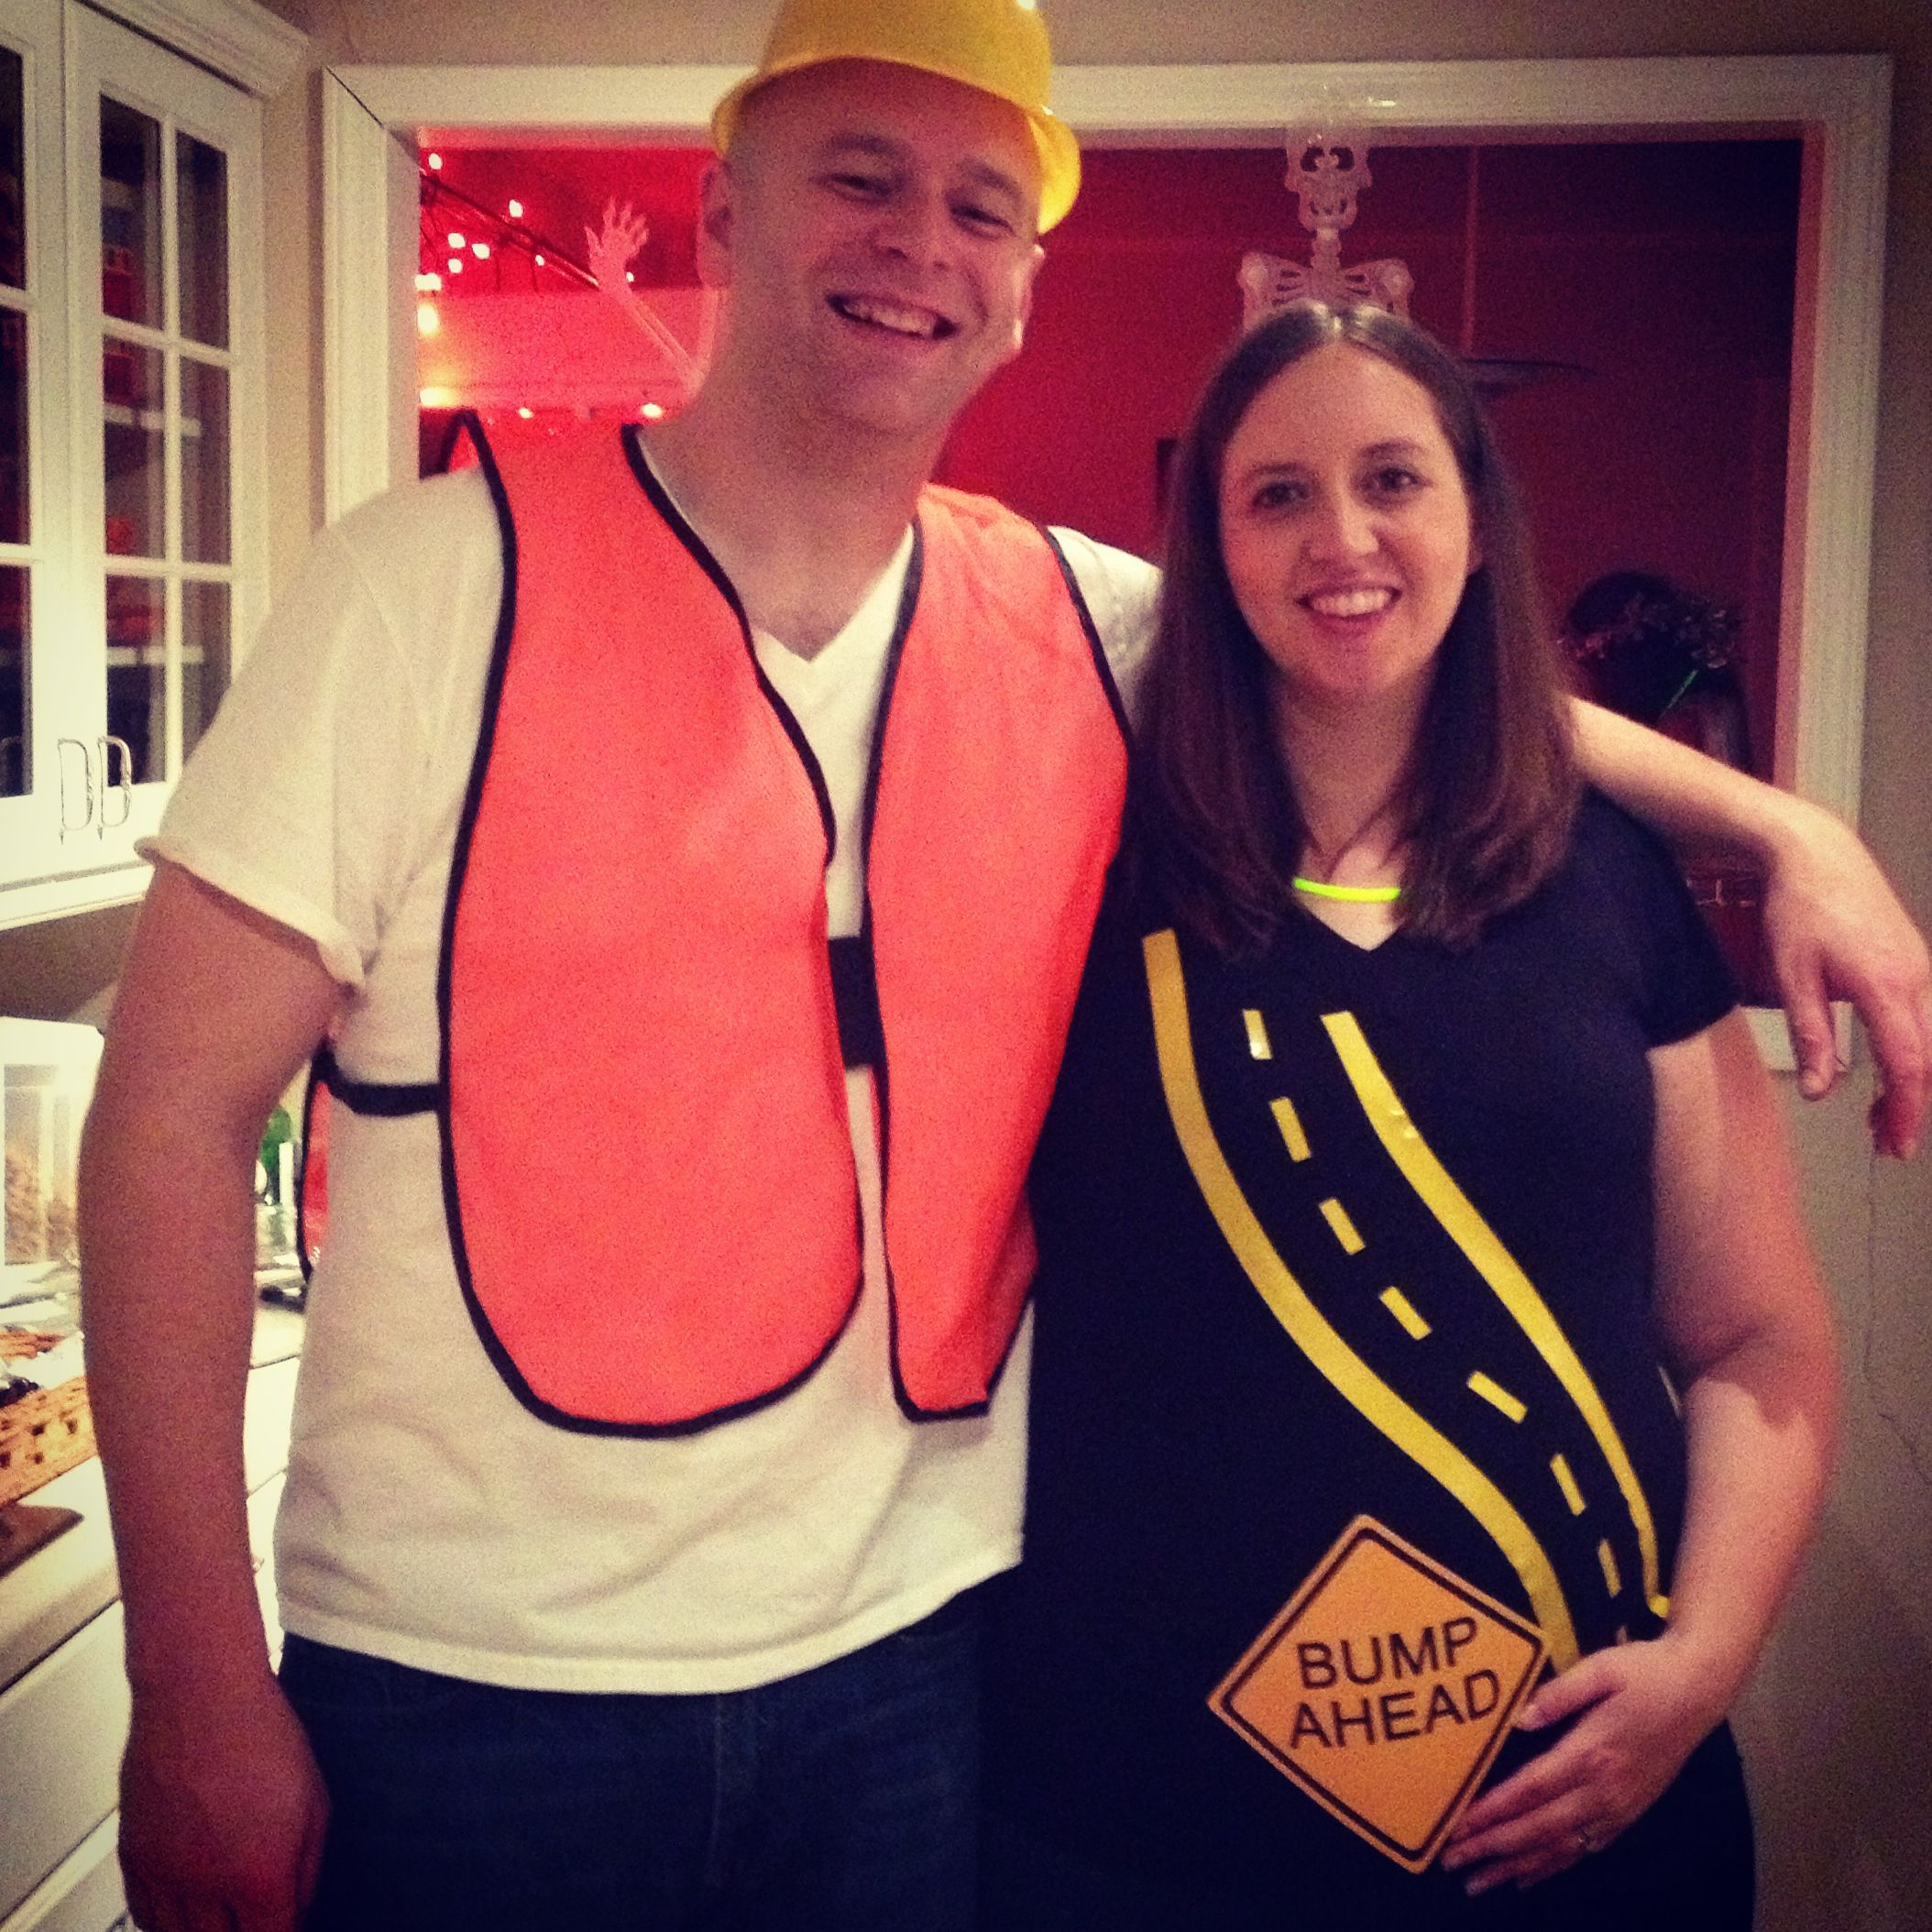 our halloween couple costume this year to incorporate my pregnant baby bump bump ahead - Pregnant Halloween Couples Costumes